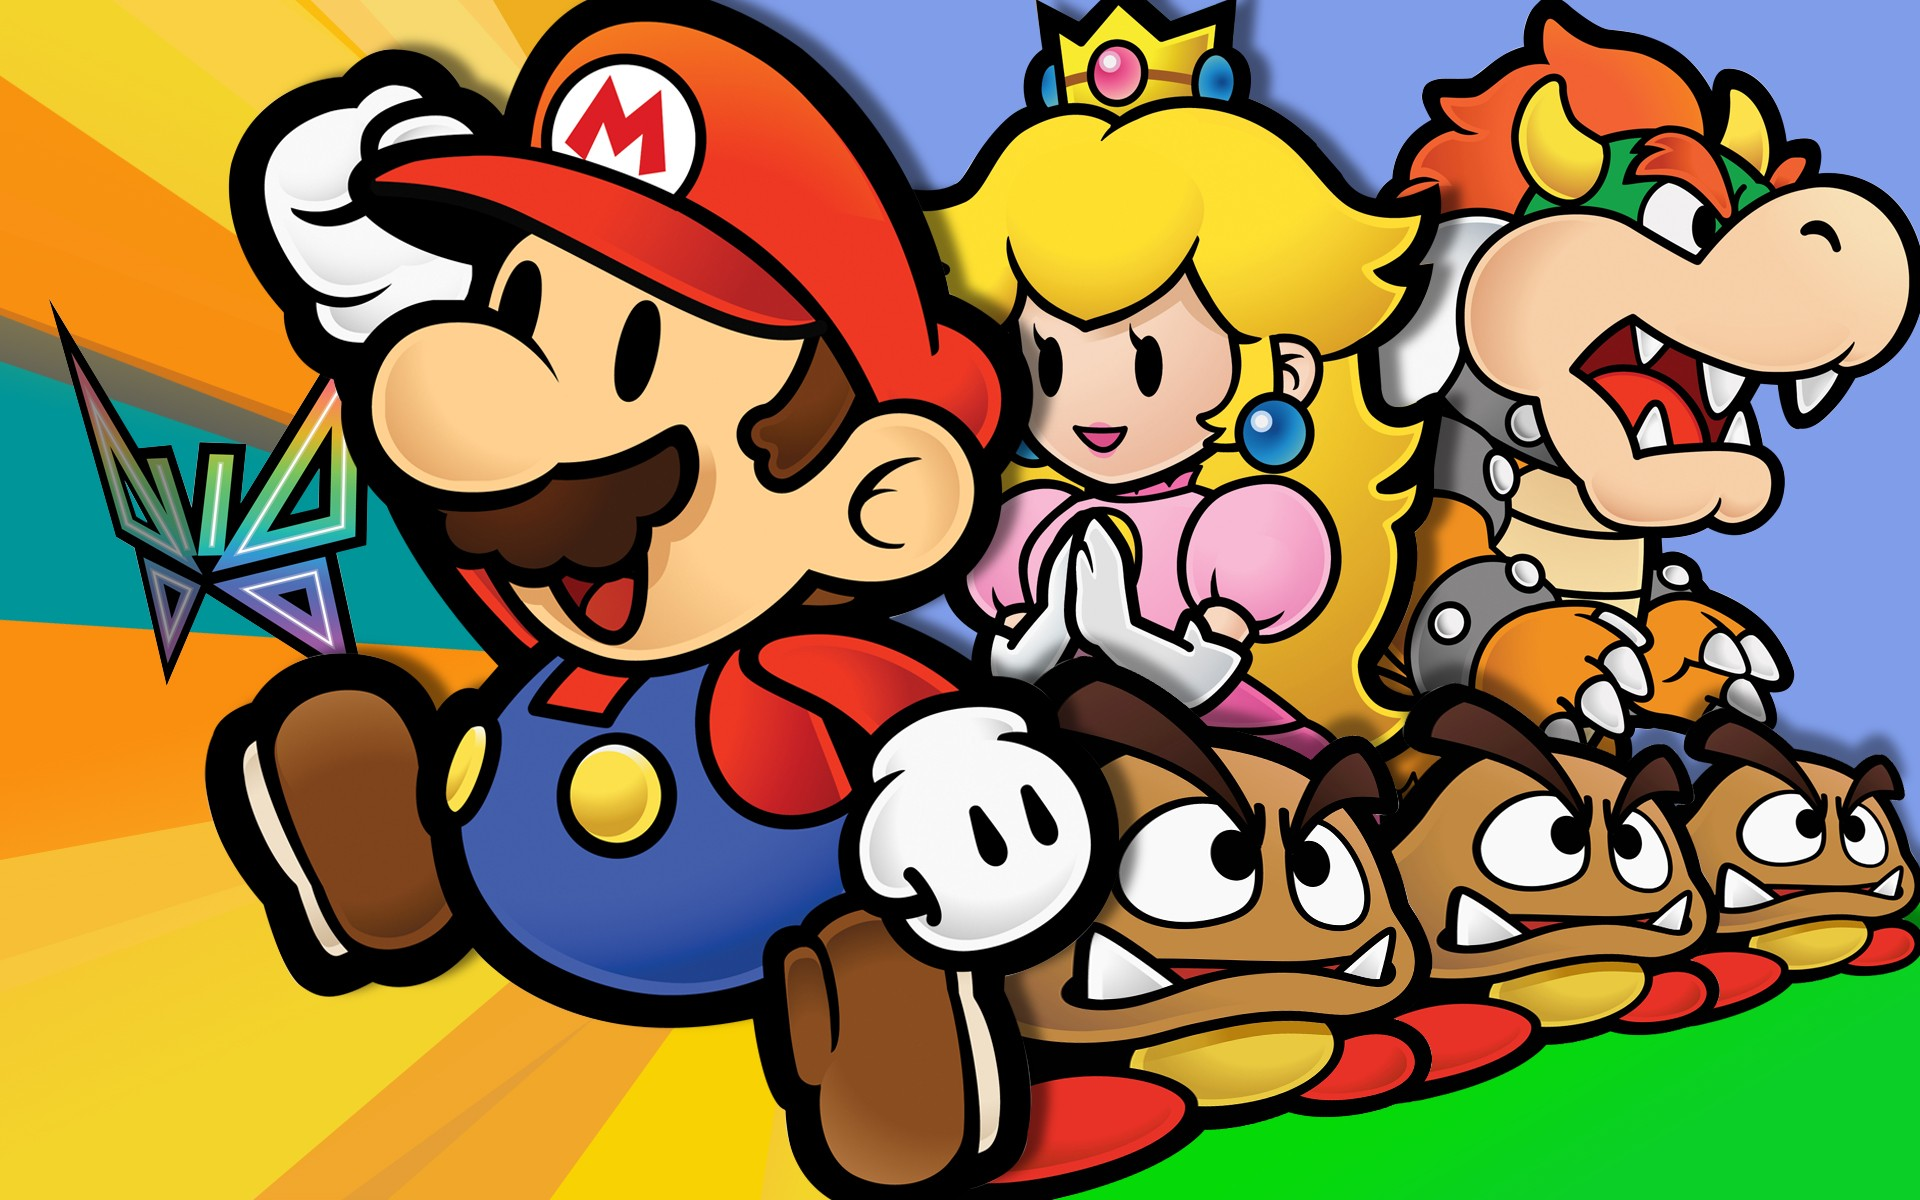 Mario bros y sus personajes hd 1920x1200 imagenes for Imagenes para wallpaper